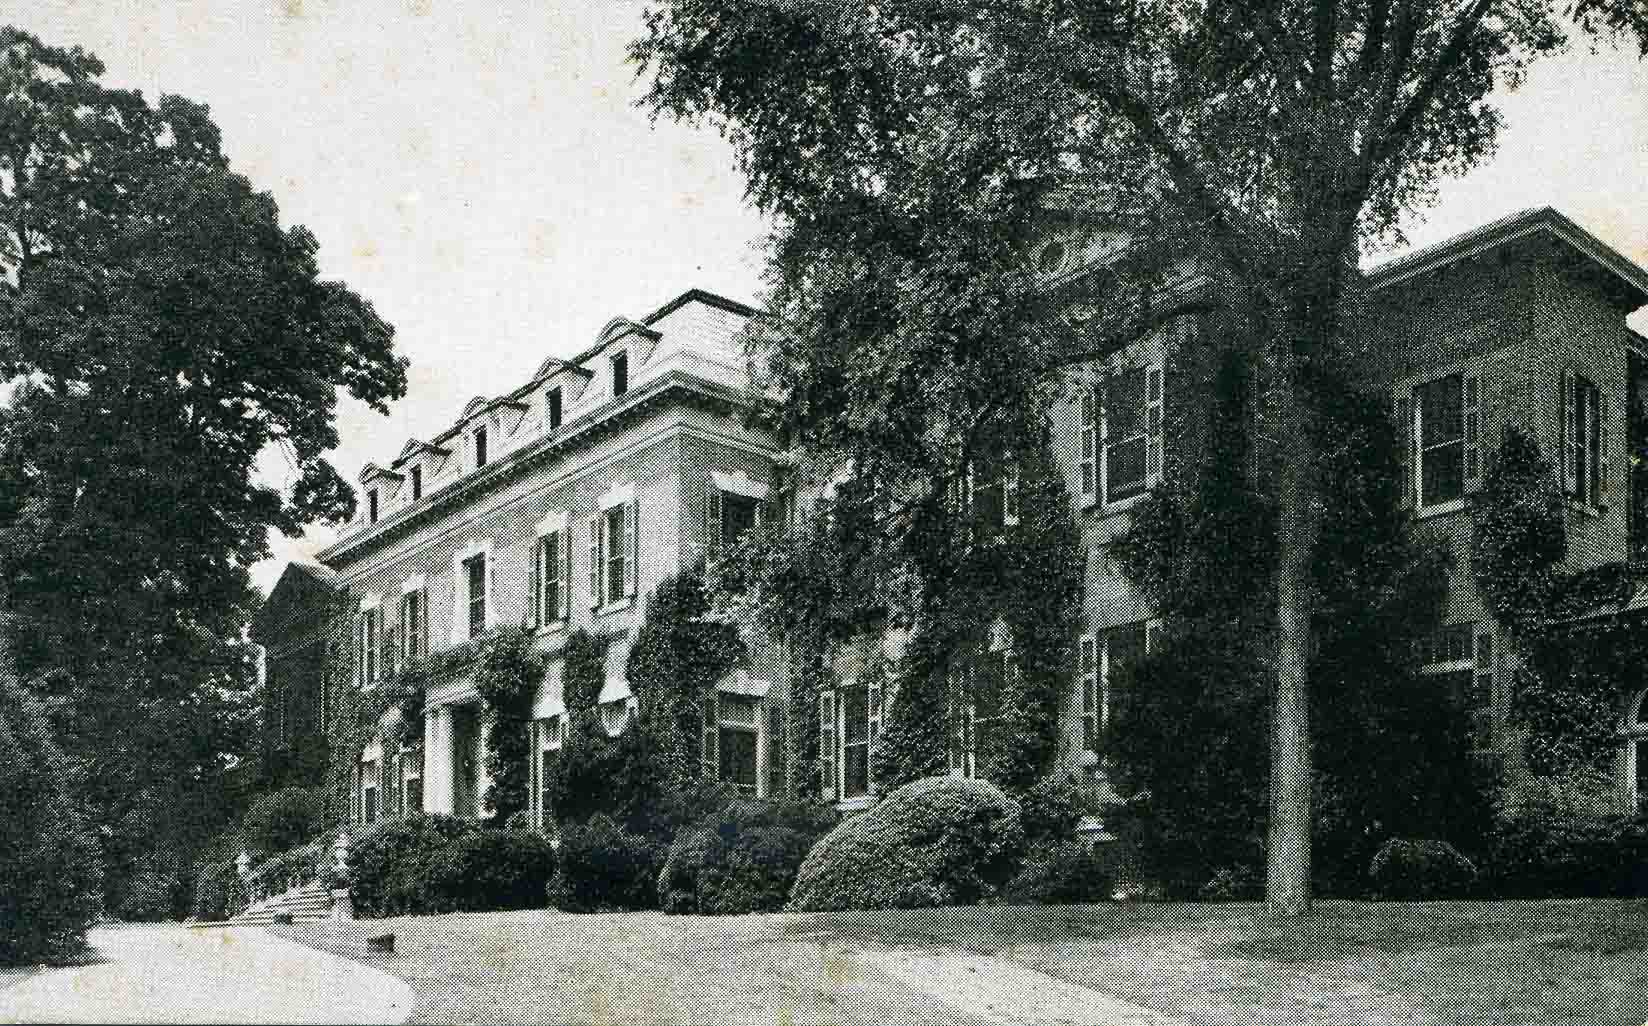 South View Main Building and Driveway (AR.Misc.PC.001)